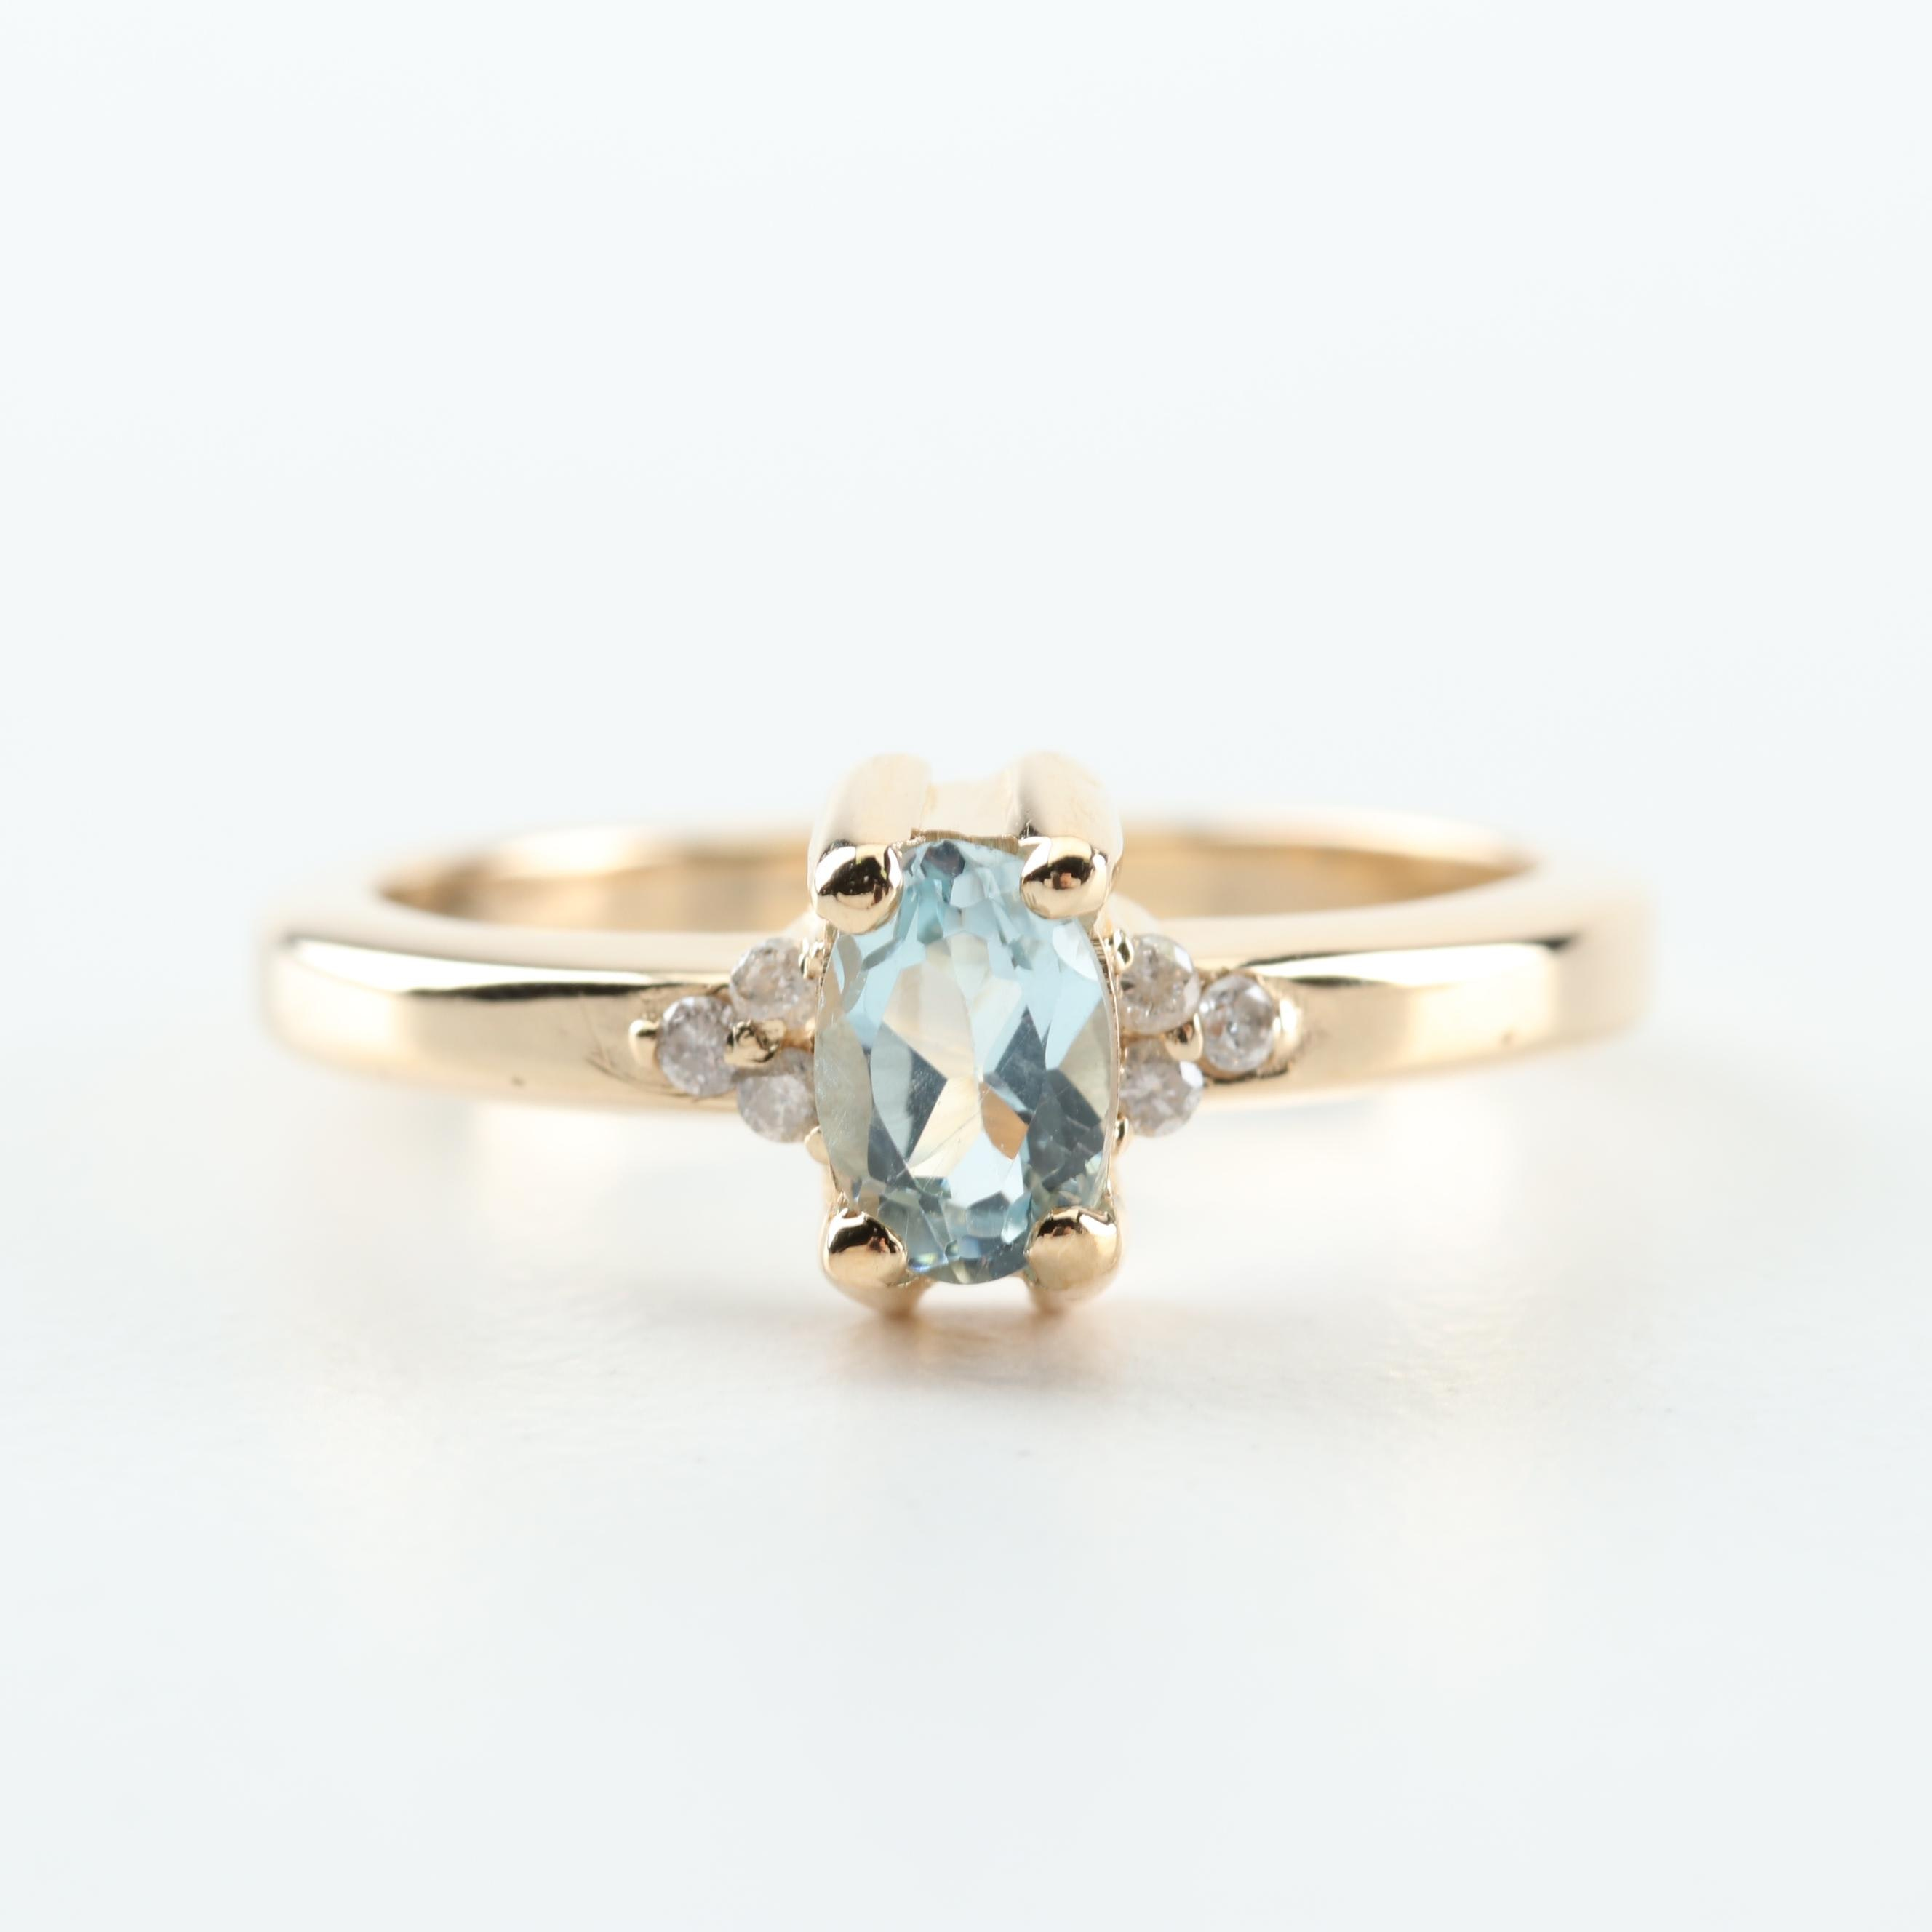 14K Yellow Gold, Blue Topaz, and Diamond Ring